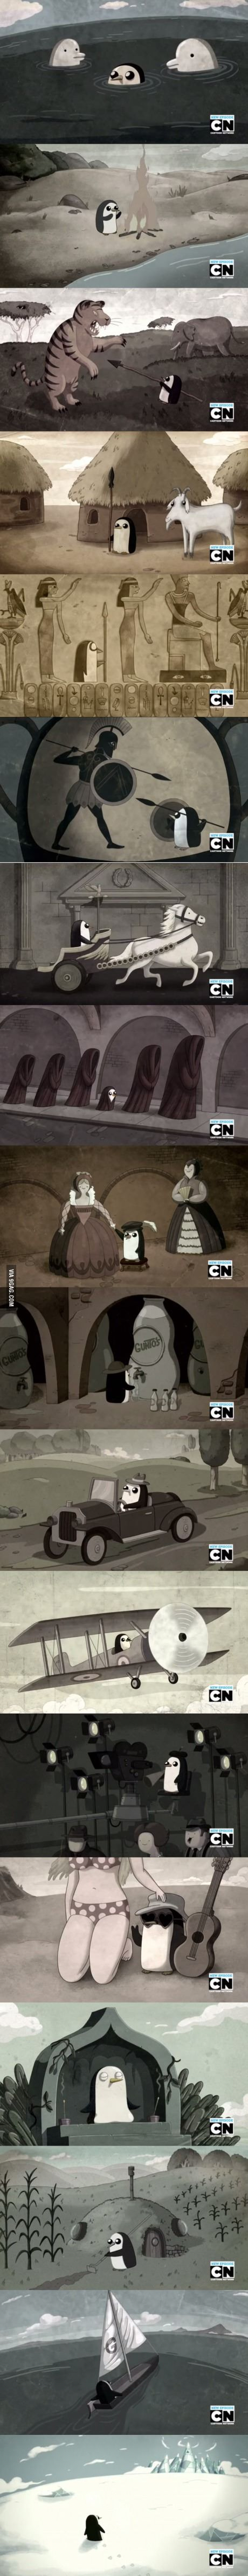 Life of Gunter; Idk why but this touches me. I just dunno